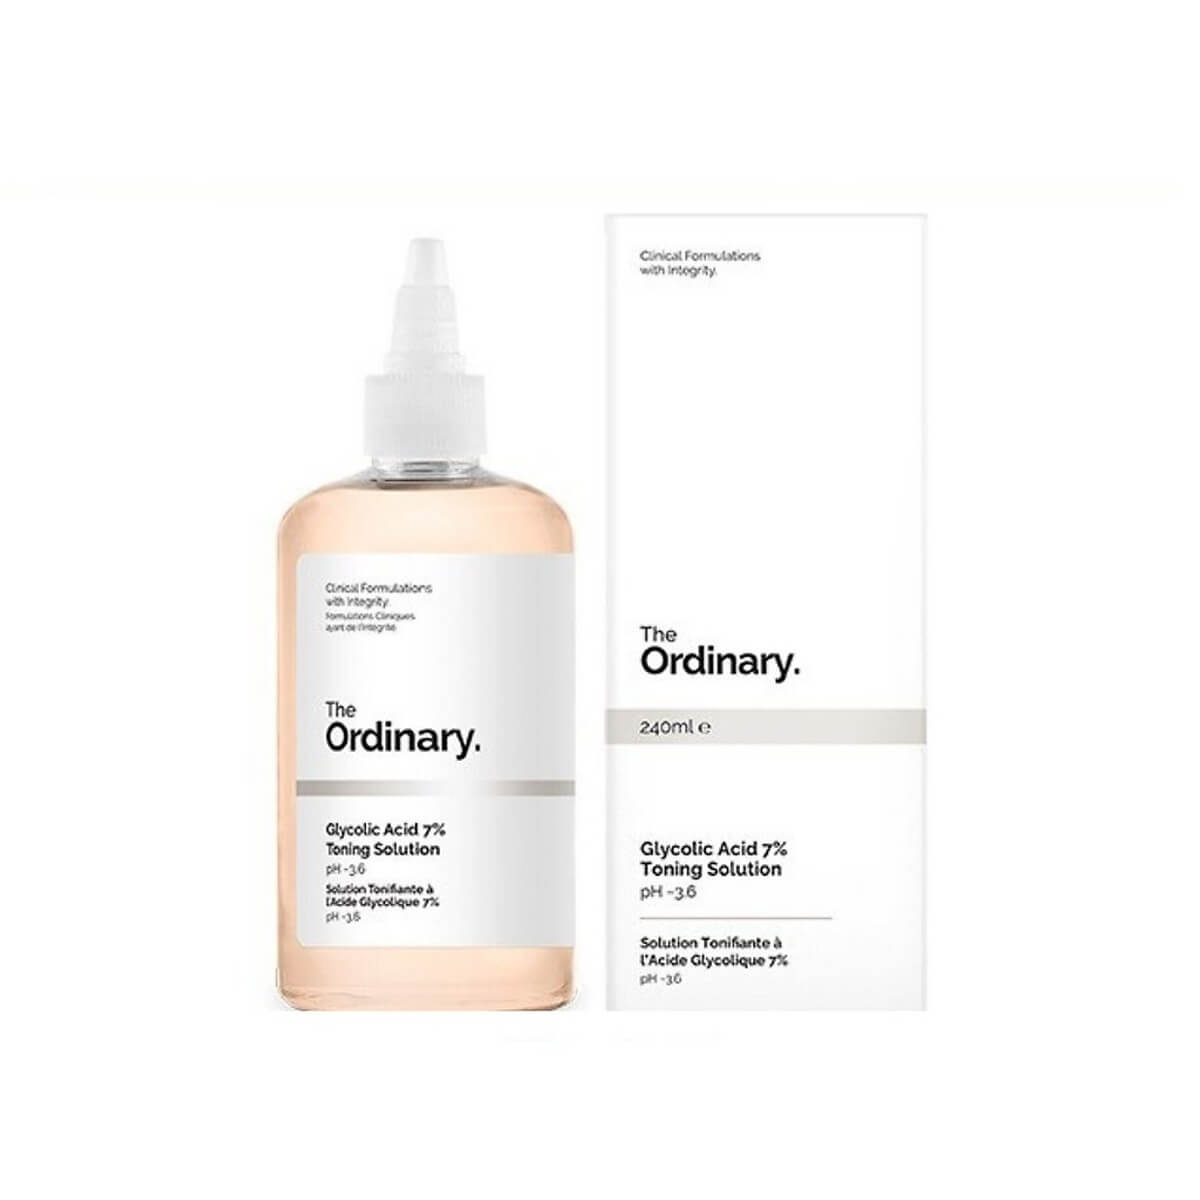 Nước Hoa Hồng Tẩy Da Chết AHA The Ordinary Glycolic Acid 7% Toning Solution